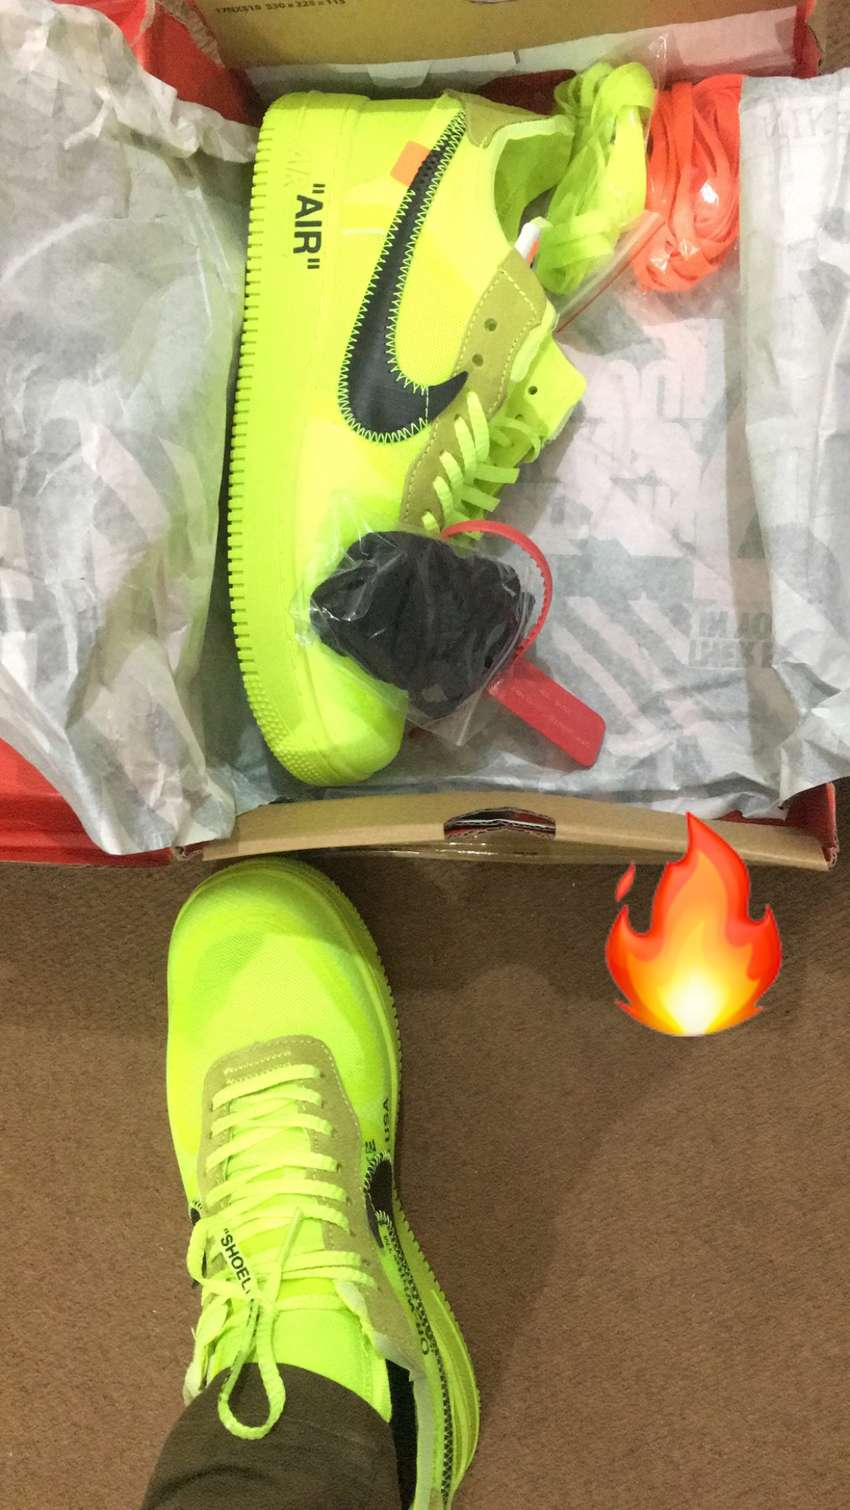 NIKE OFFWHITE NEON SHOE FOR SALE 0